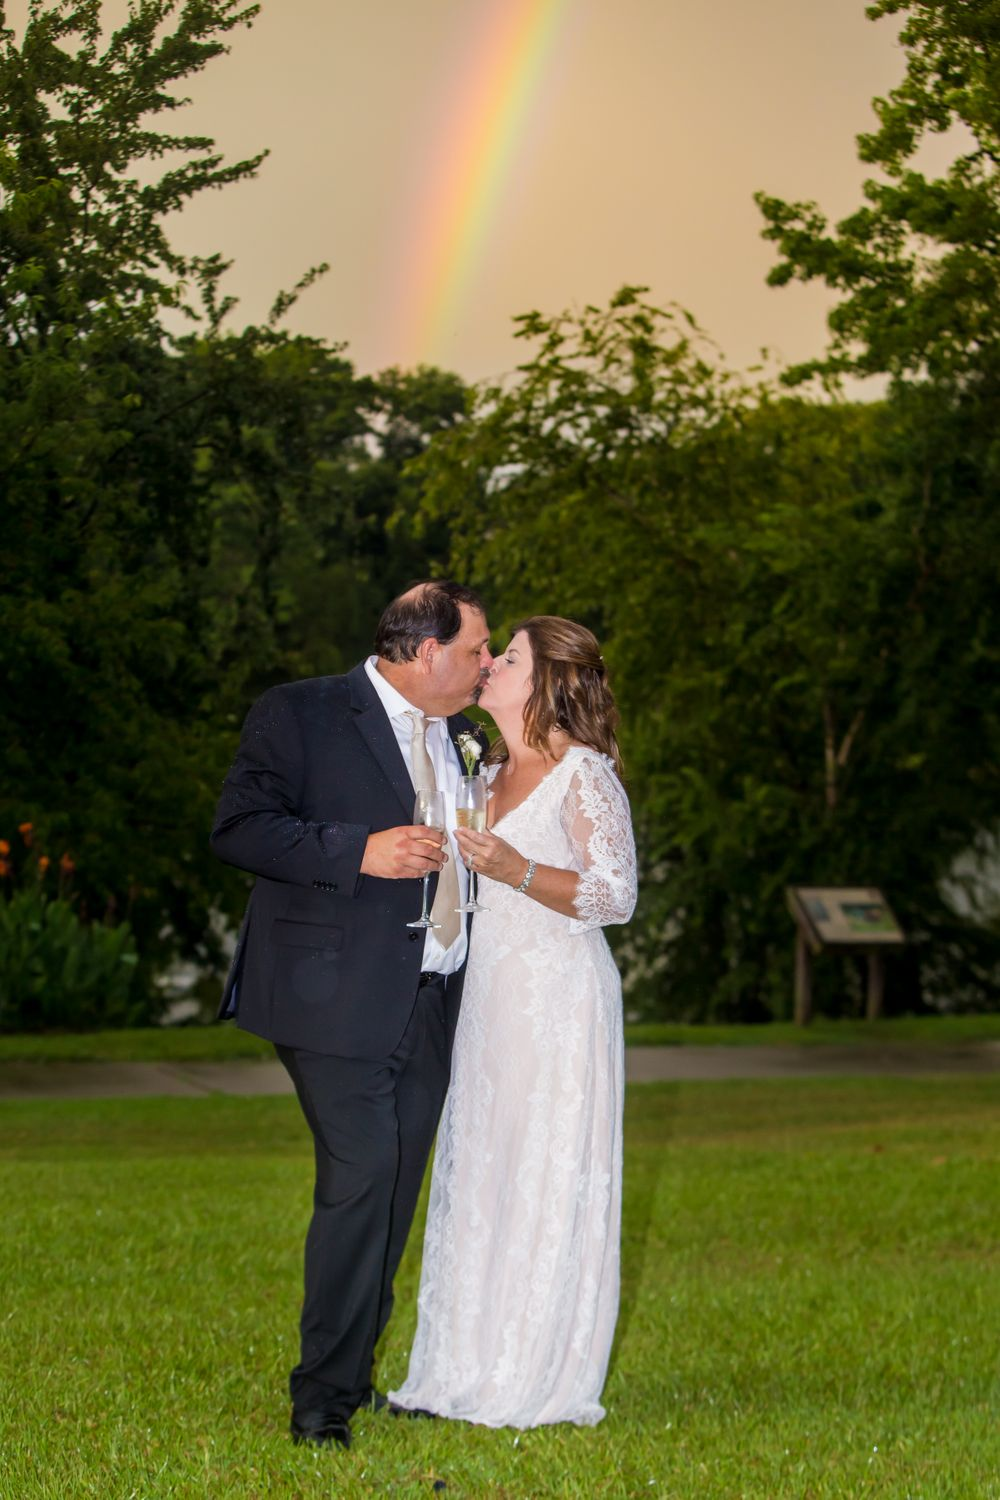 Bride Wendee and groom Bill kiss in front of a rainbow following their wedding at Stone River in West Columbia, SC